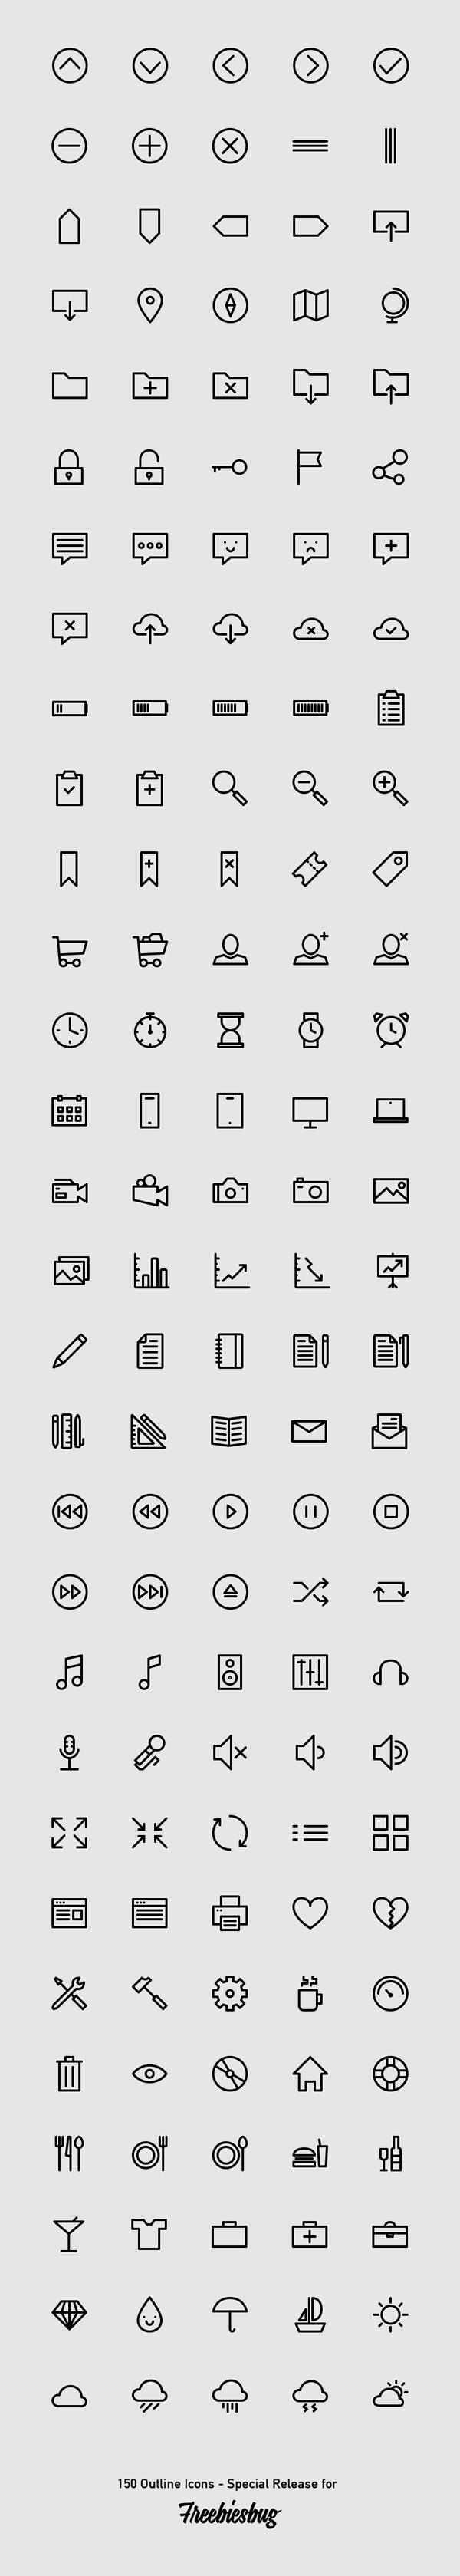 Outlined_Icons